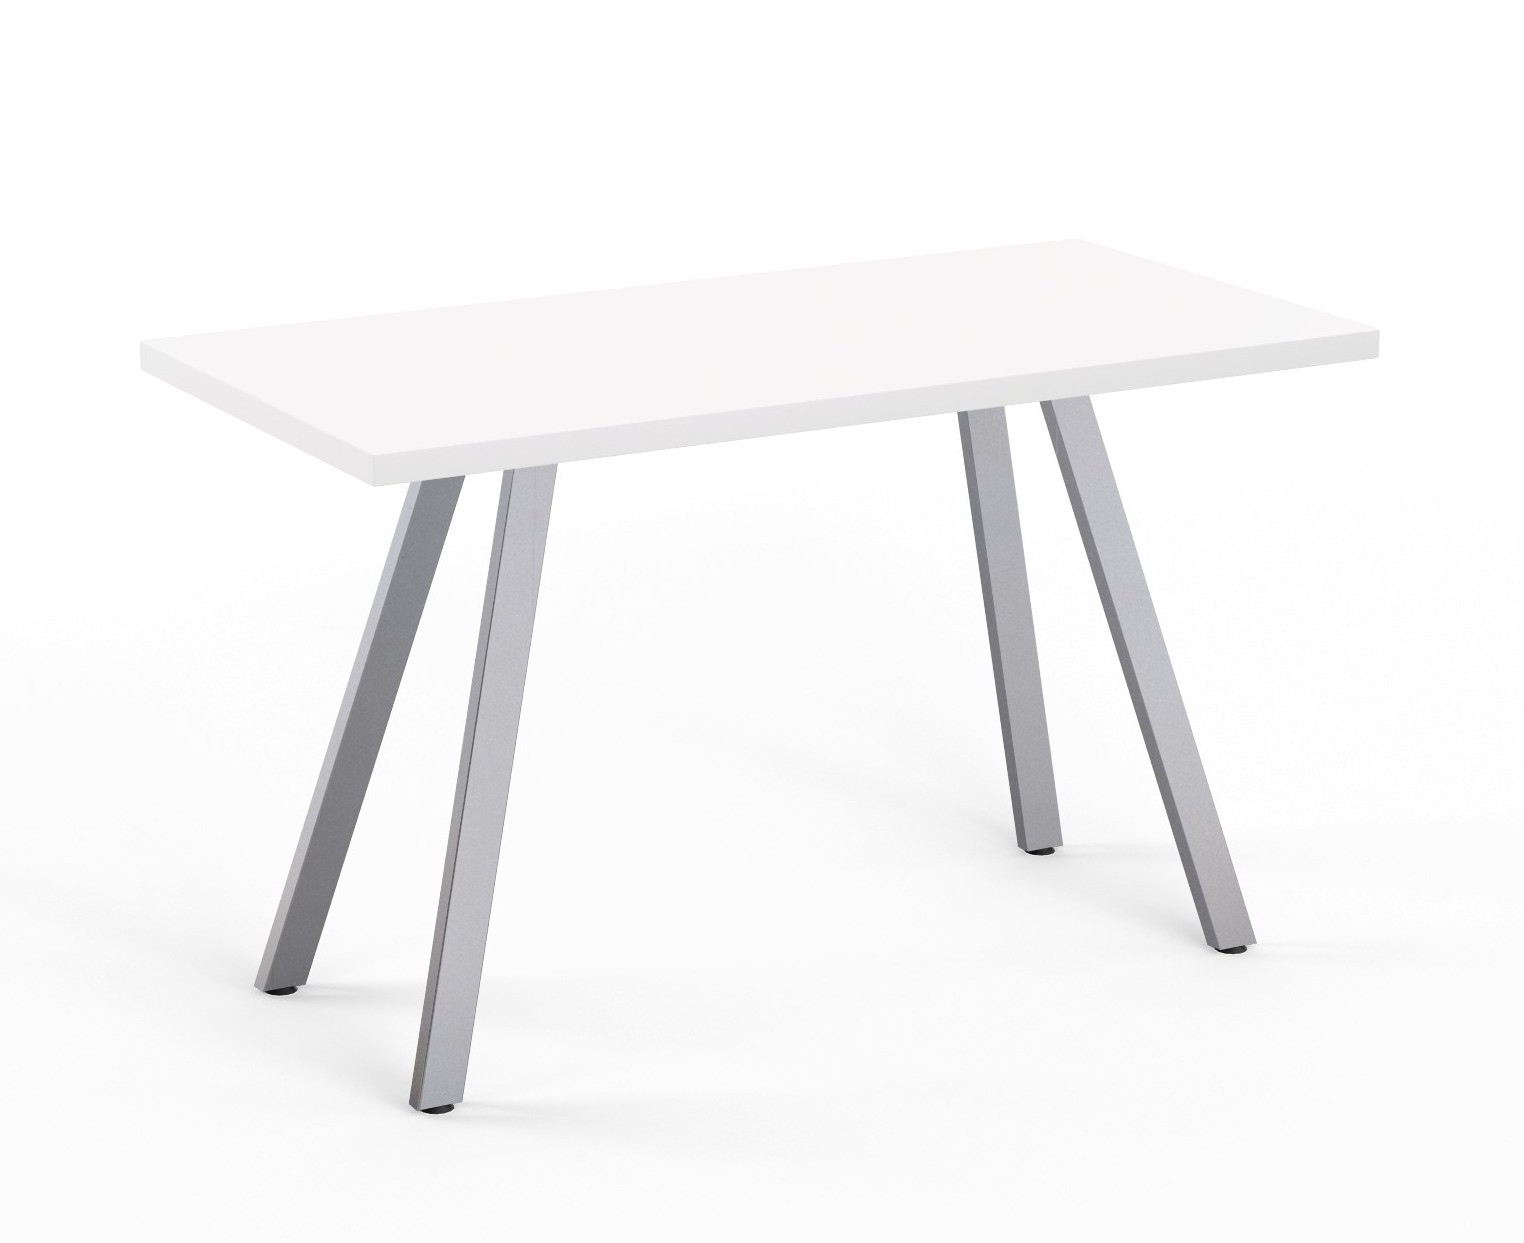 white aim table by special-t